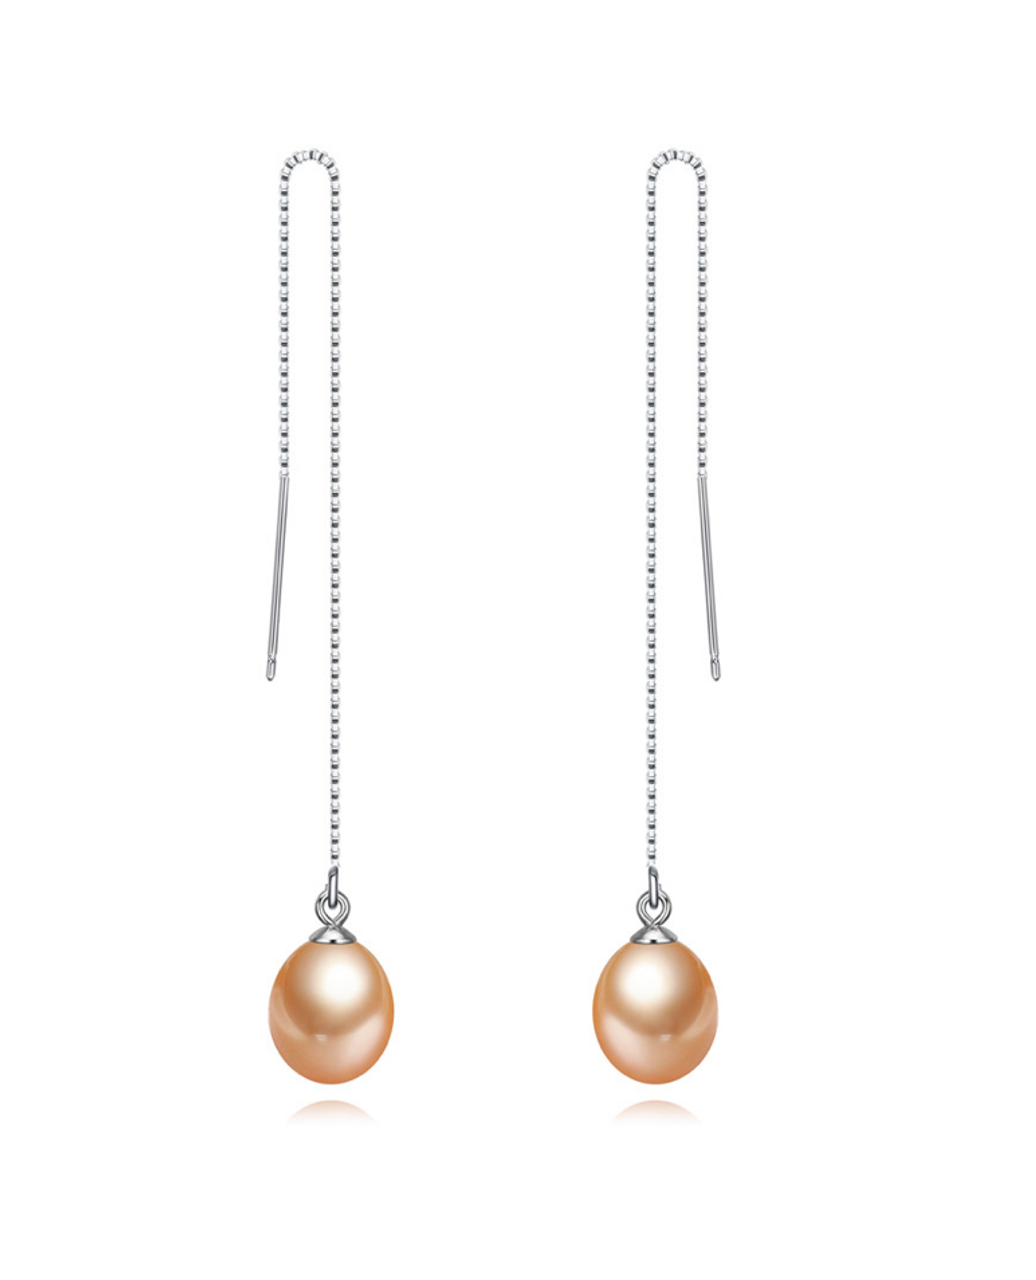 view of a pair of Peach Freshwater Pearl Threader Earrings